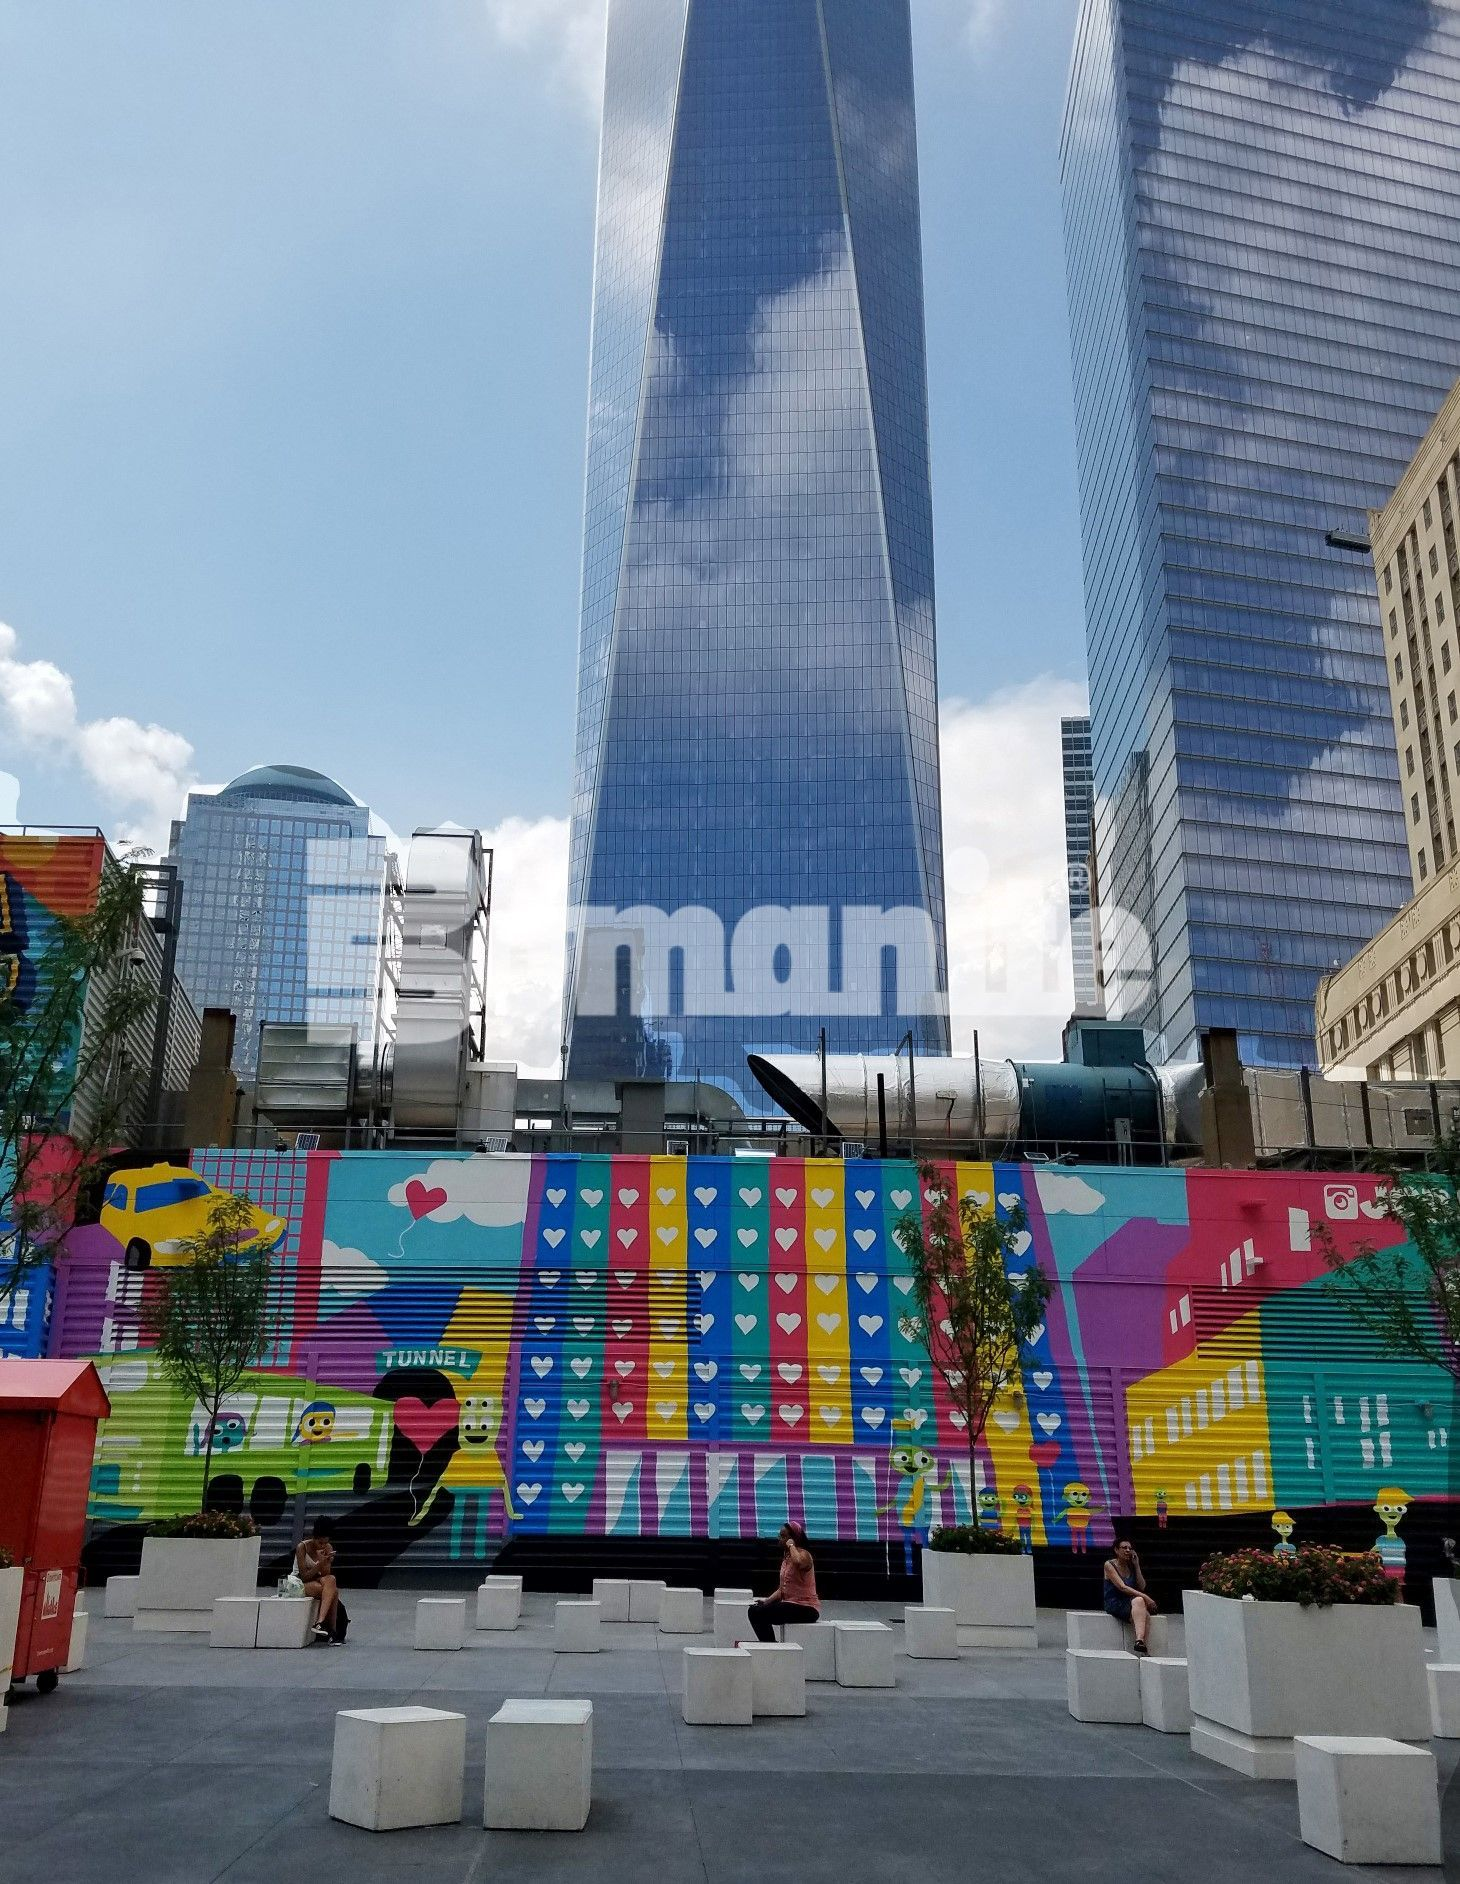 World Trade Center with award winning Bomanite Exposed Aggregate Systems using Bomanite Alloy decorative concrete street design connecting Tower One to the soon to be built Tower Two.